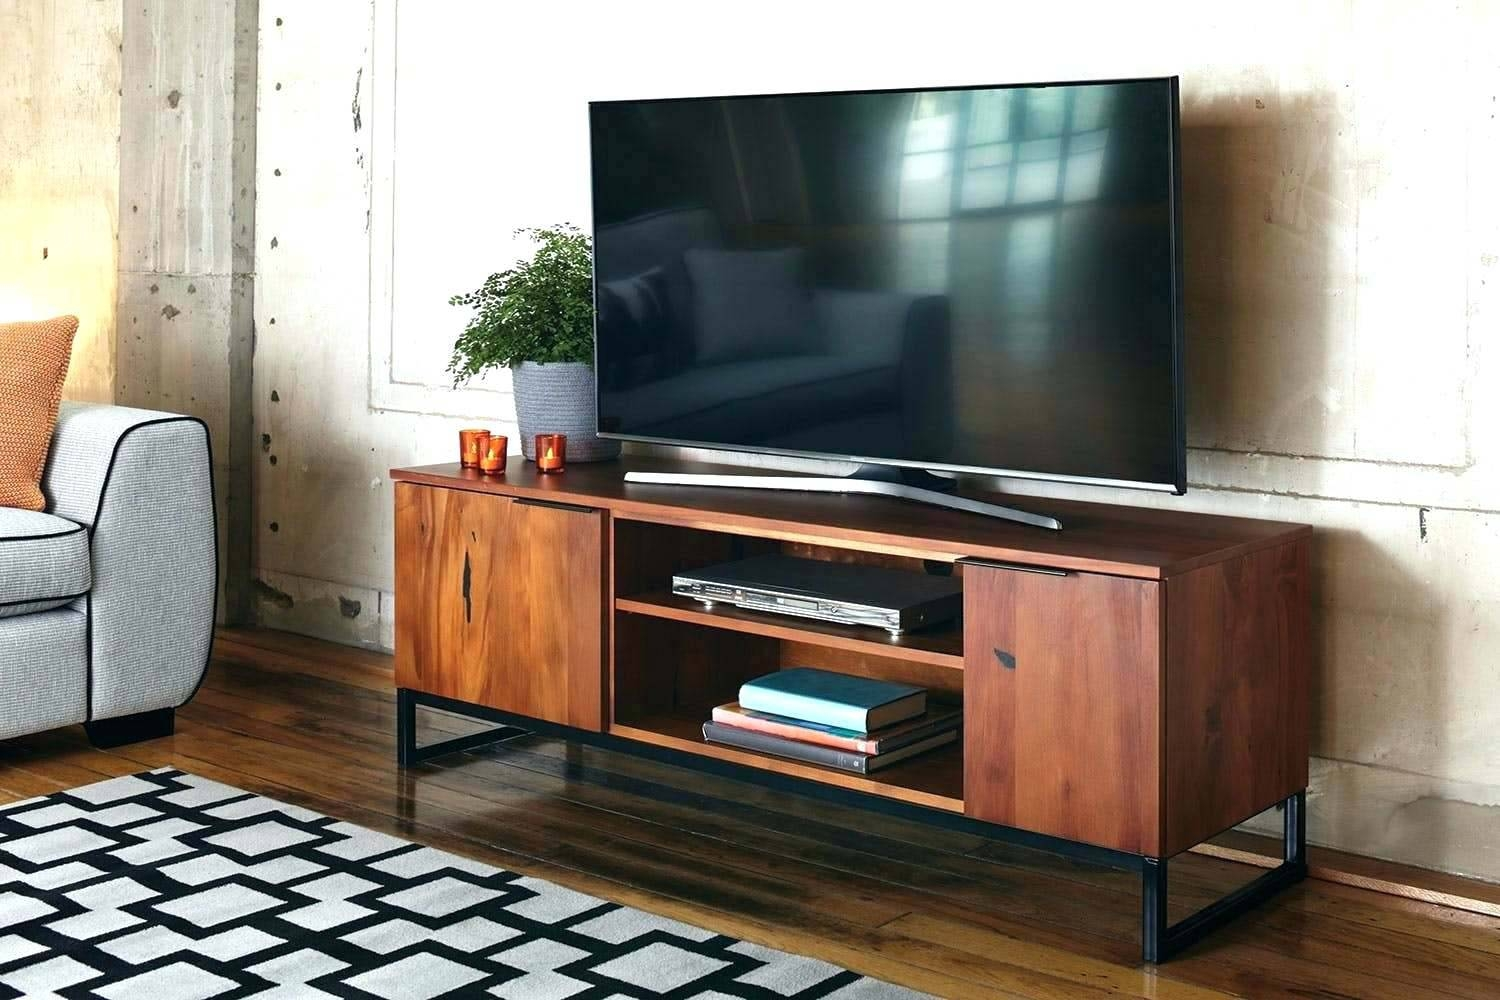 Tv Stand : 25 Chic Vertica Oak Low Contemporary Tv Stand Back Pertaining To Honey Oak Tv Stands (View 5 of 15)